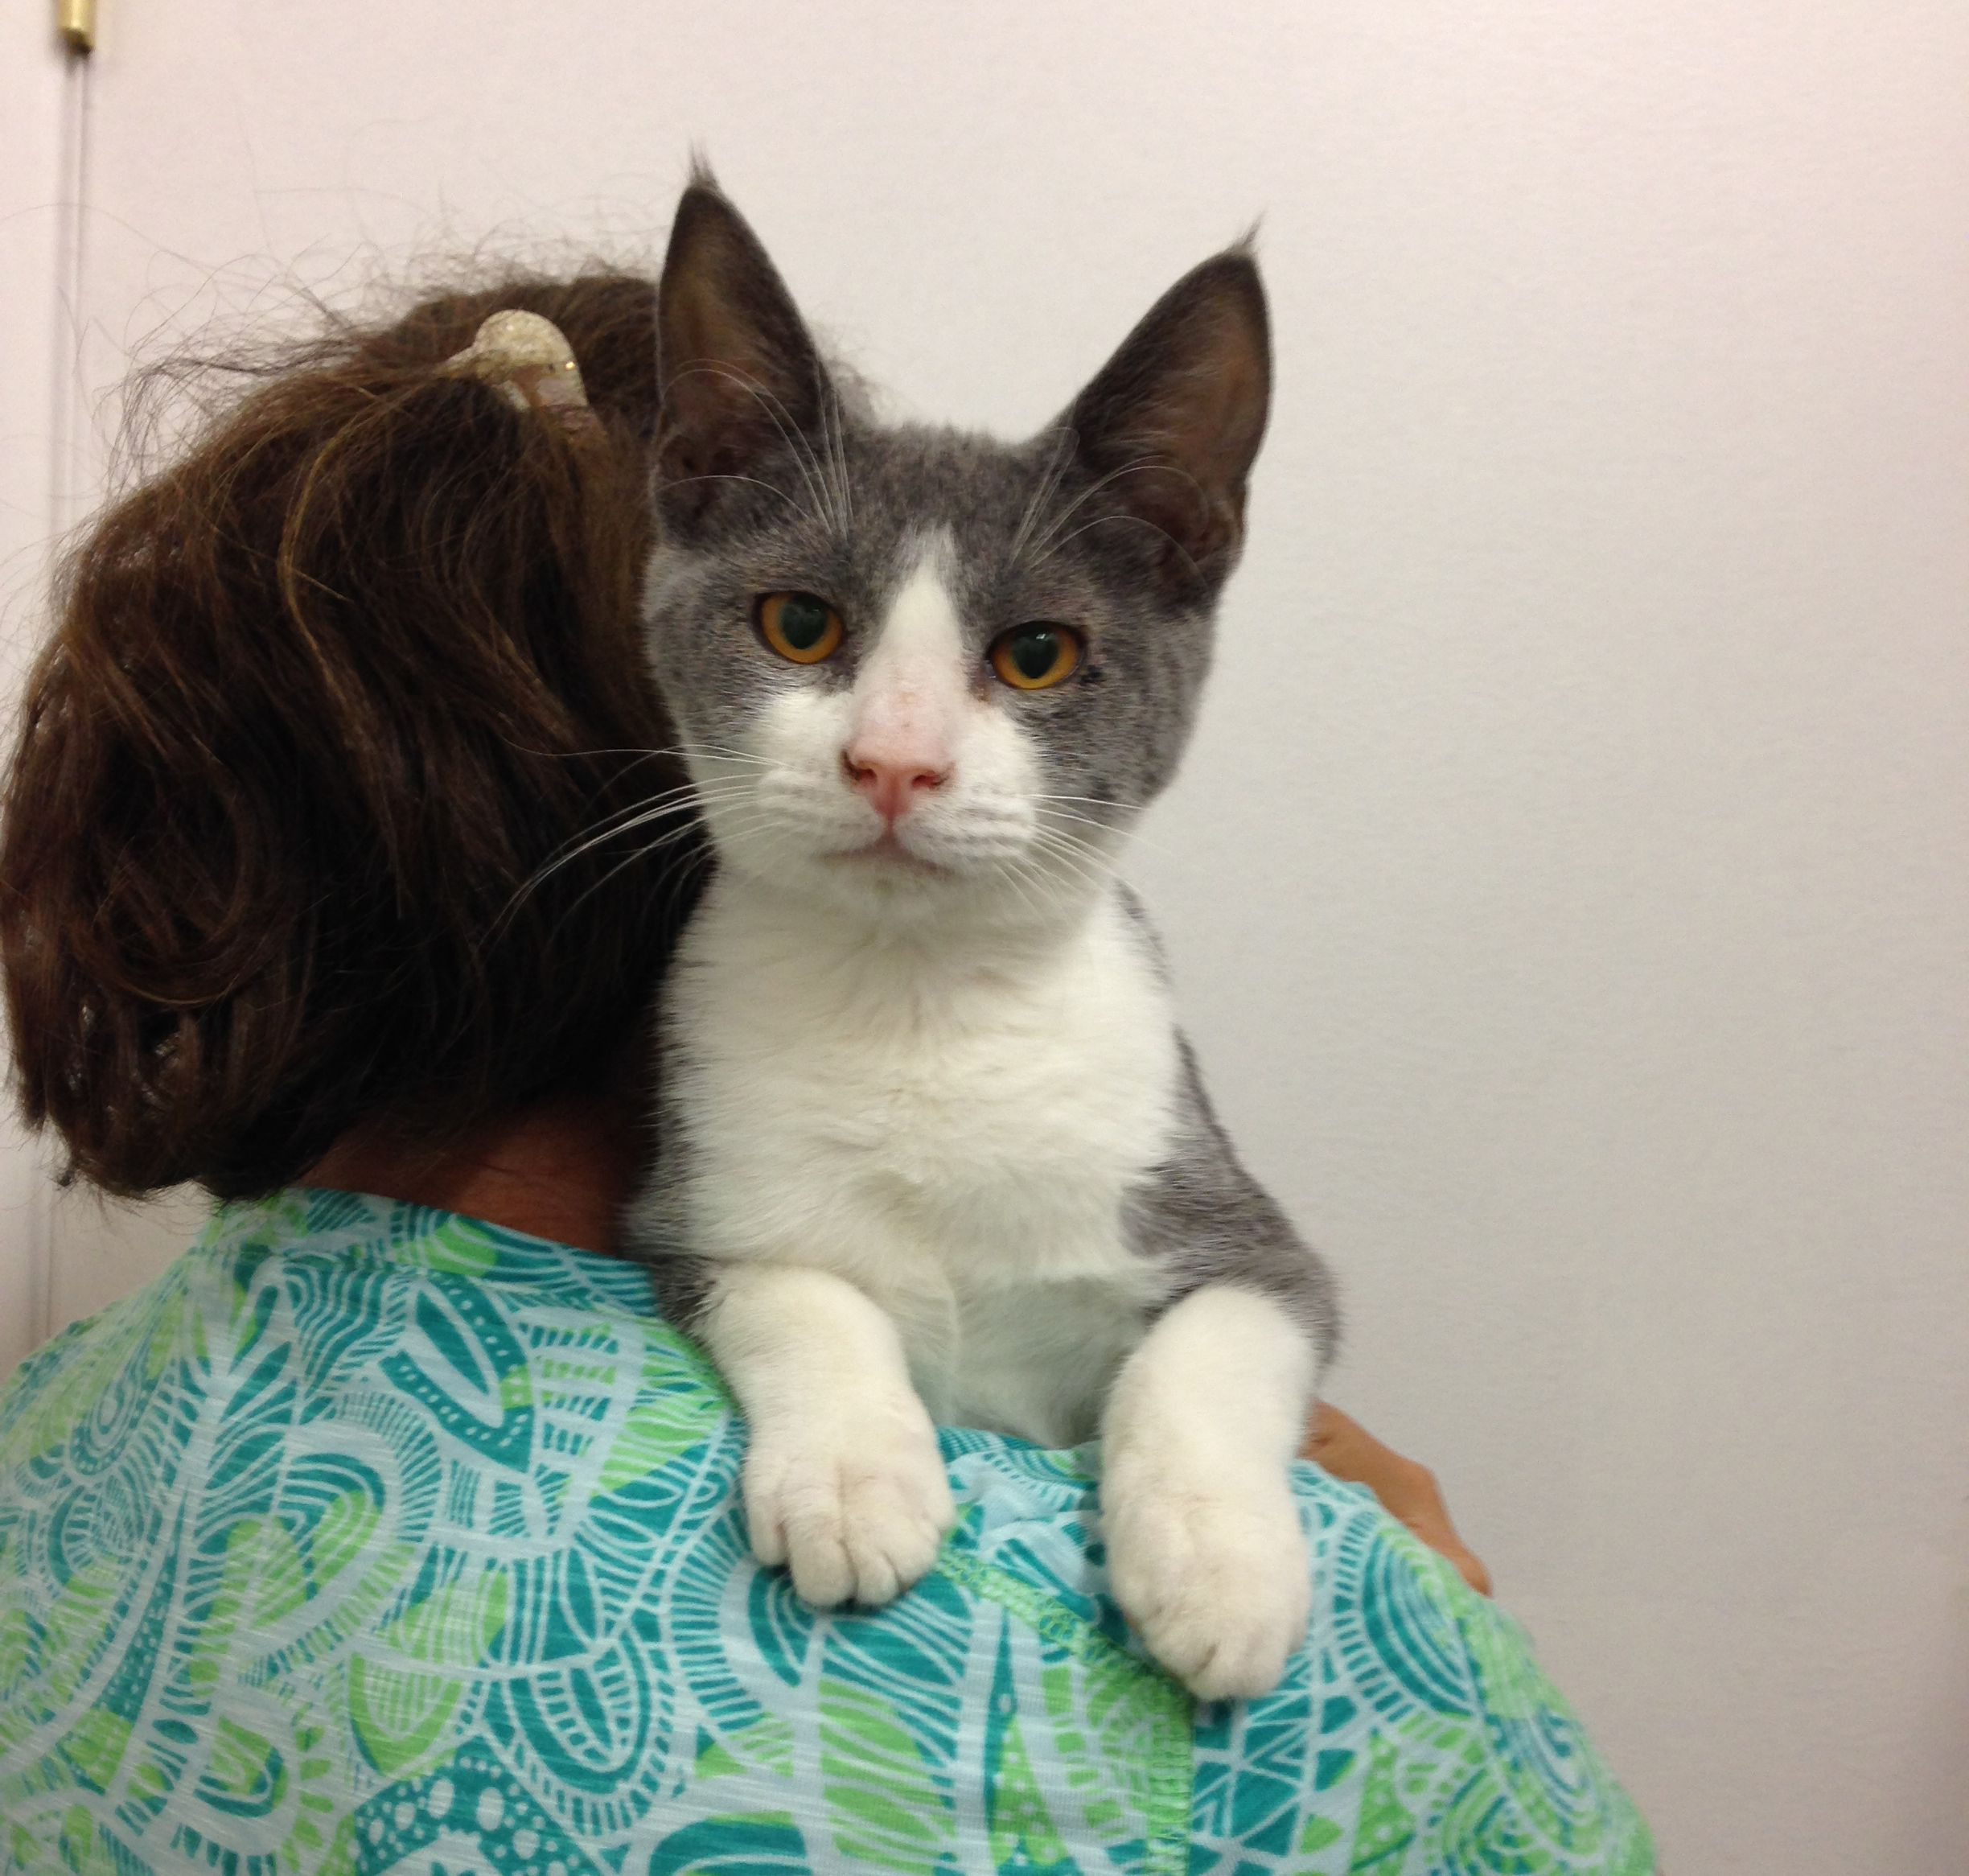 Levi Is A 5 Month Old Male Kitten This Dark Gray And White Male Cat Likes People And Is Good With Older Kids And Friend Animal Welfare League Dog Friends Pets